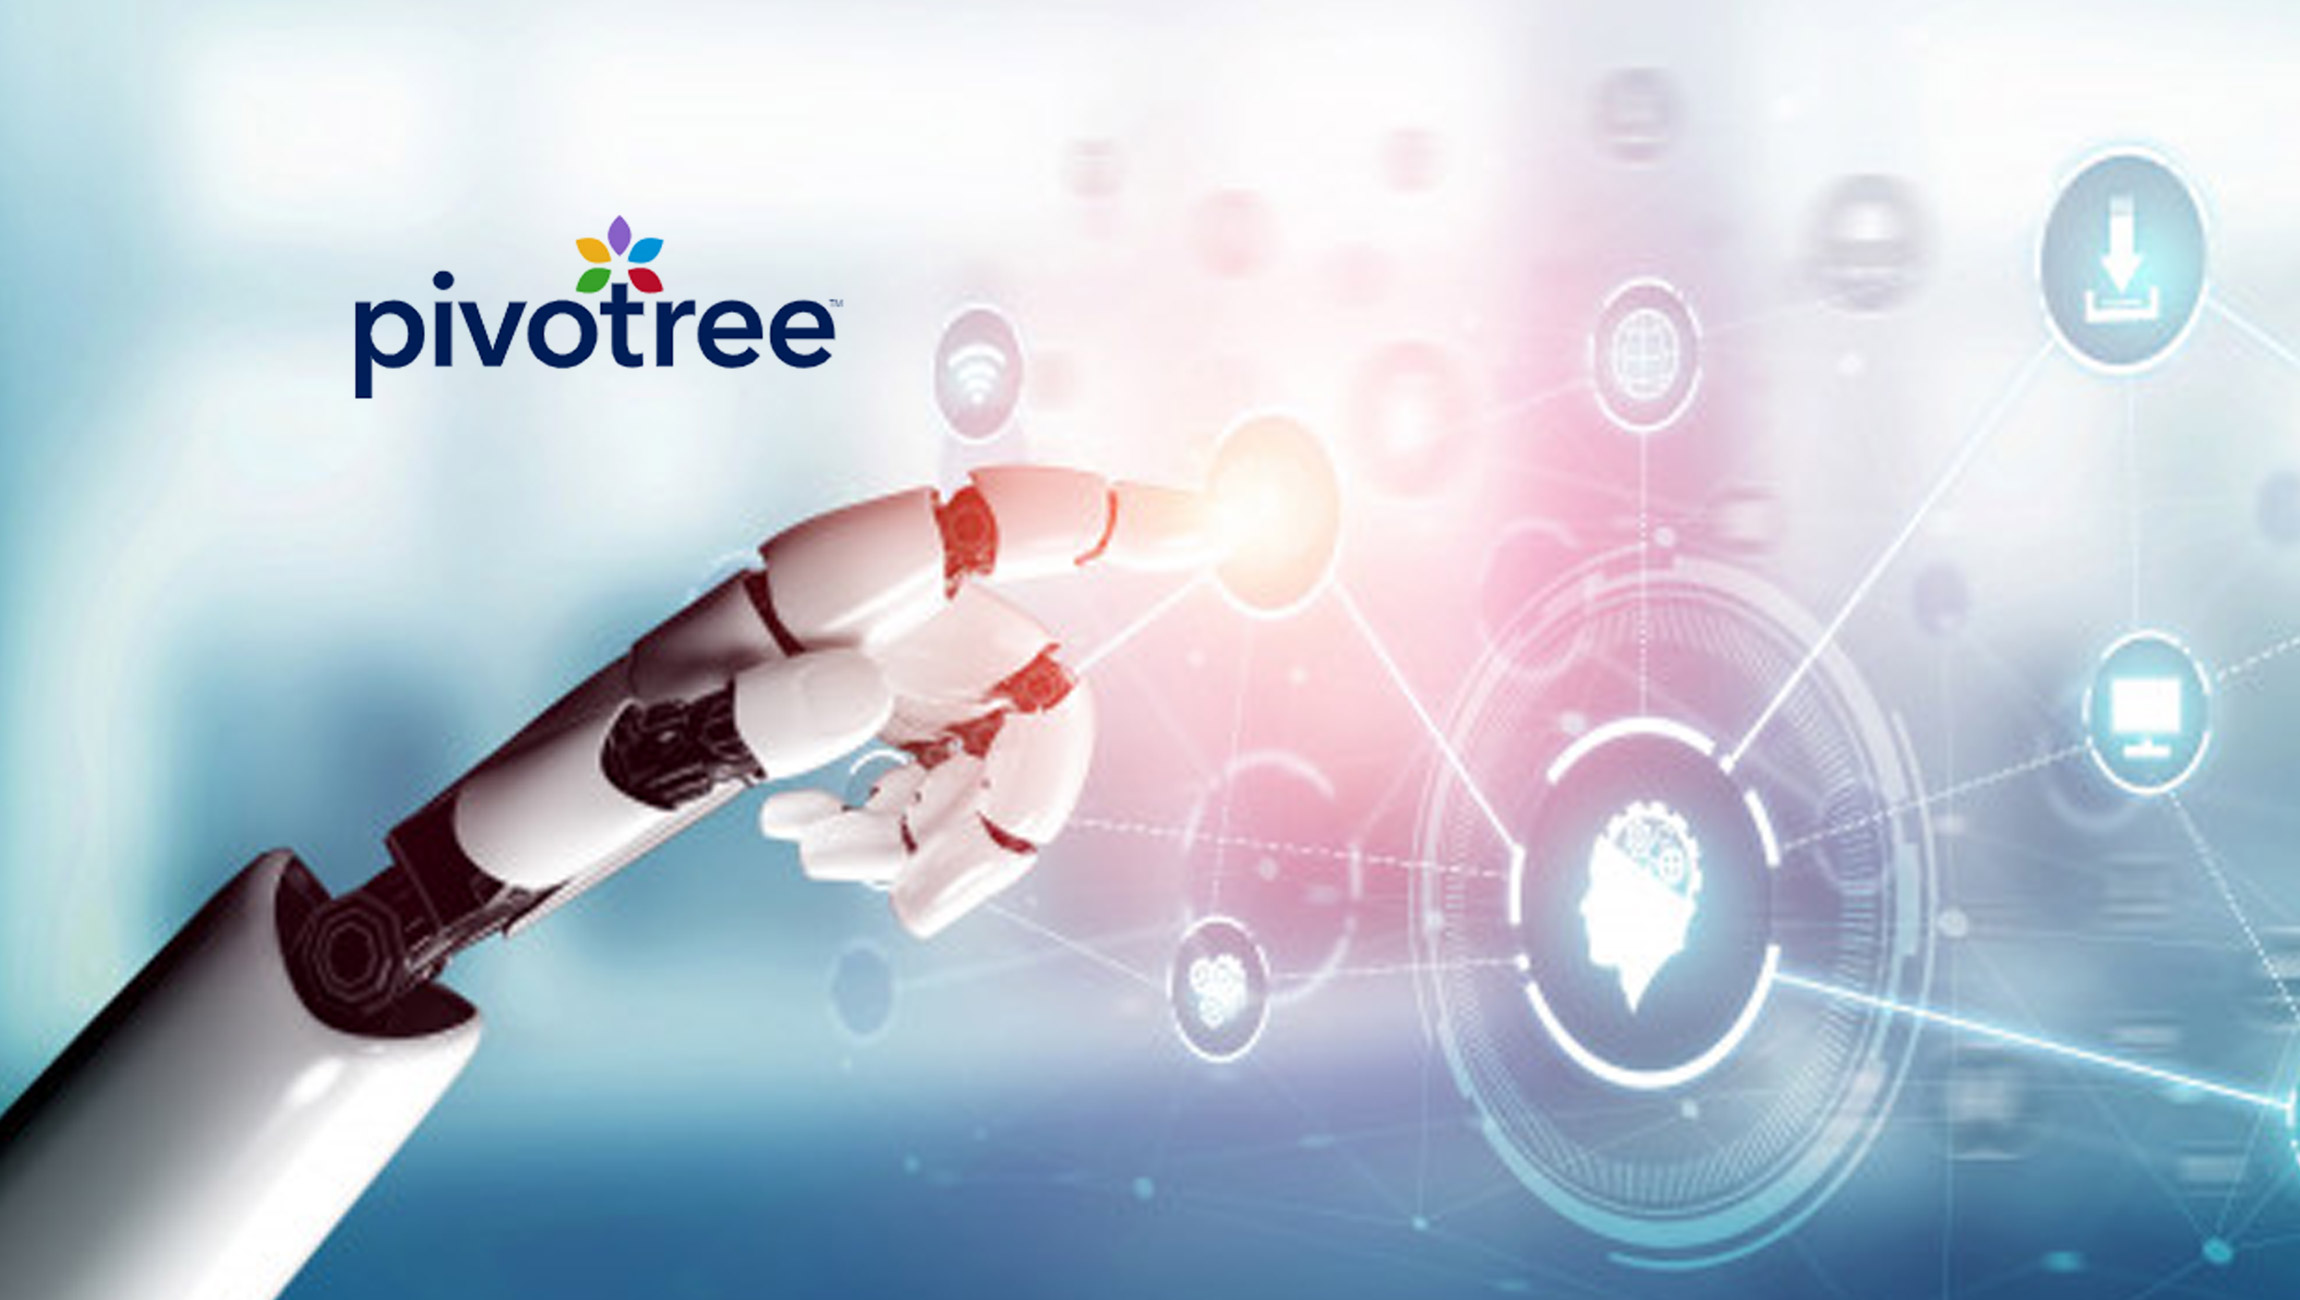 Pivotree Updates Machine Learning Platform With Image Recognition Features and Enhanced Data Management Functionality